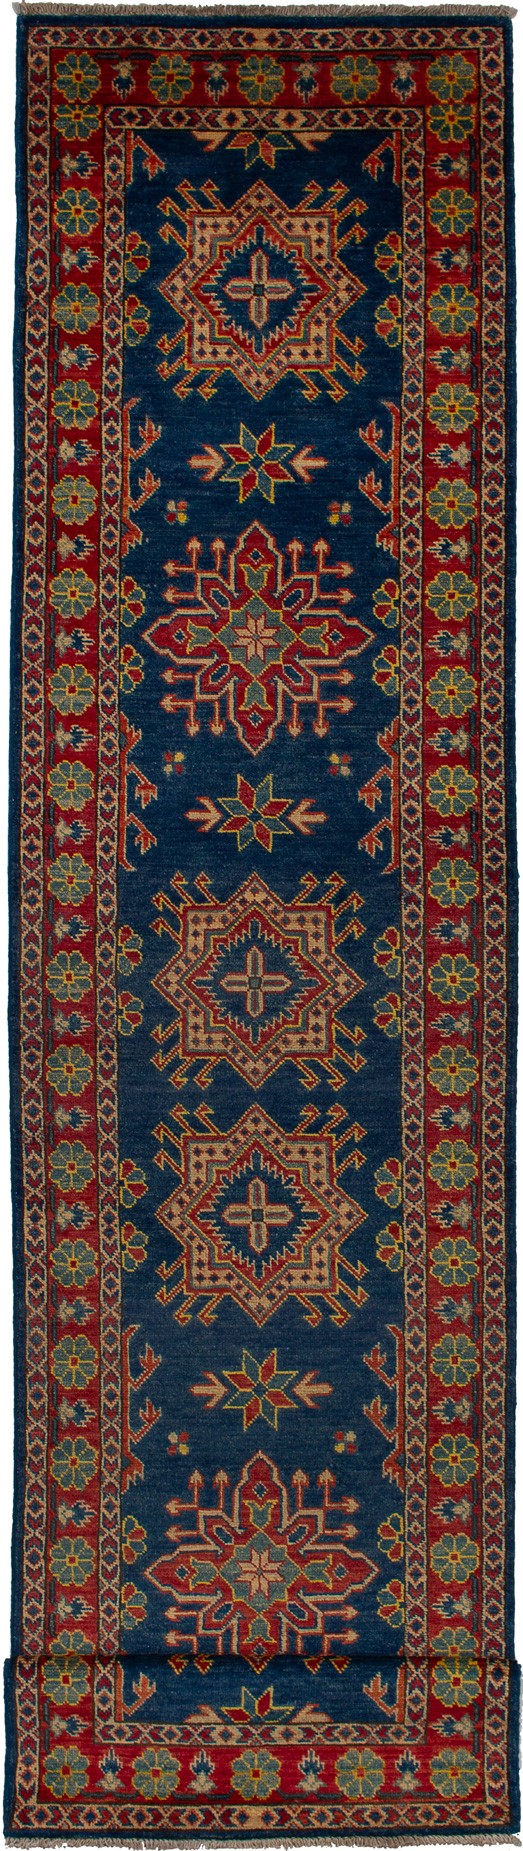 """Hand-knotted Finest Gazni Navy Blue Wool Rug 2'7"""" x 11'8"""" Size: 2'7"""" x 11'8"""""""